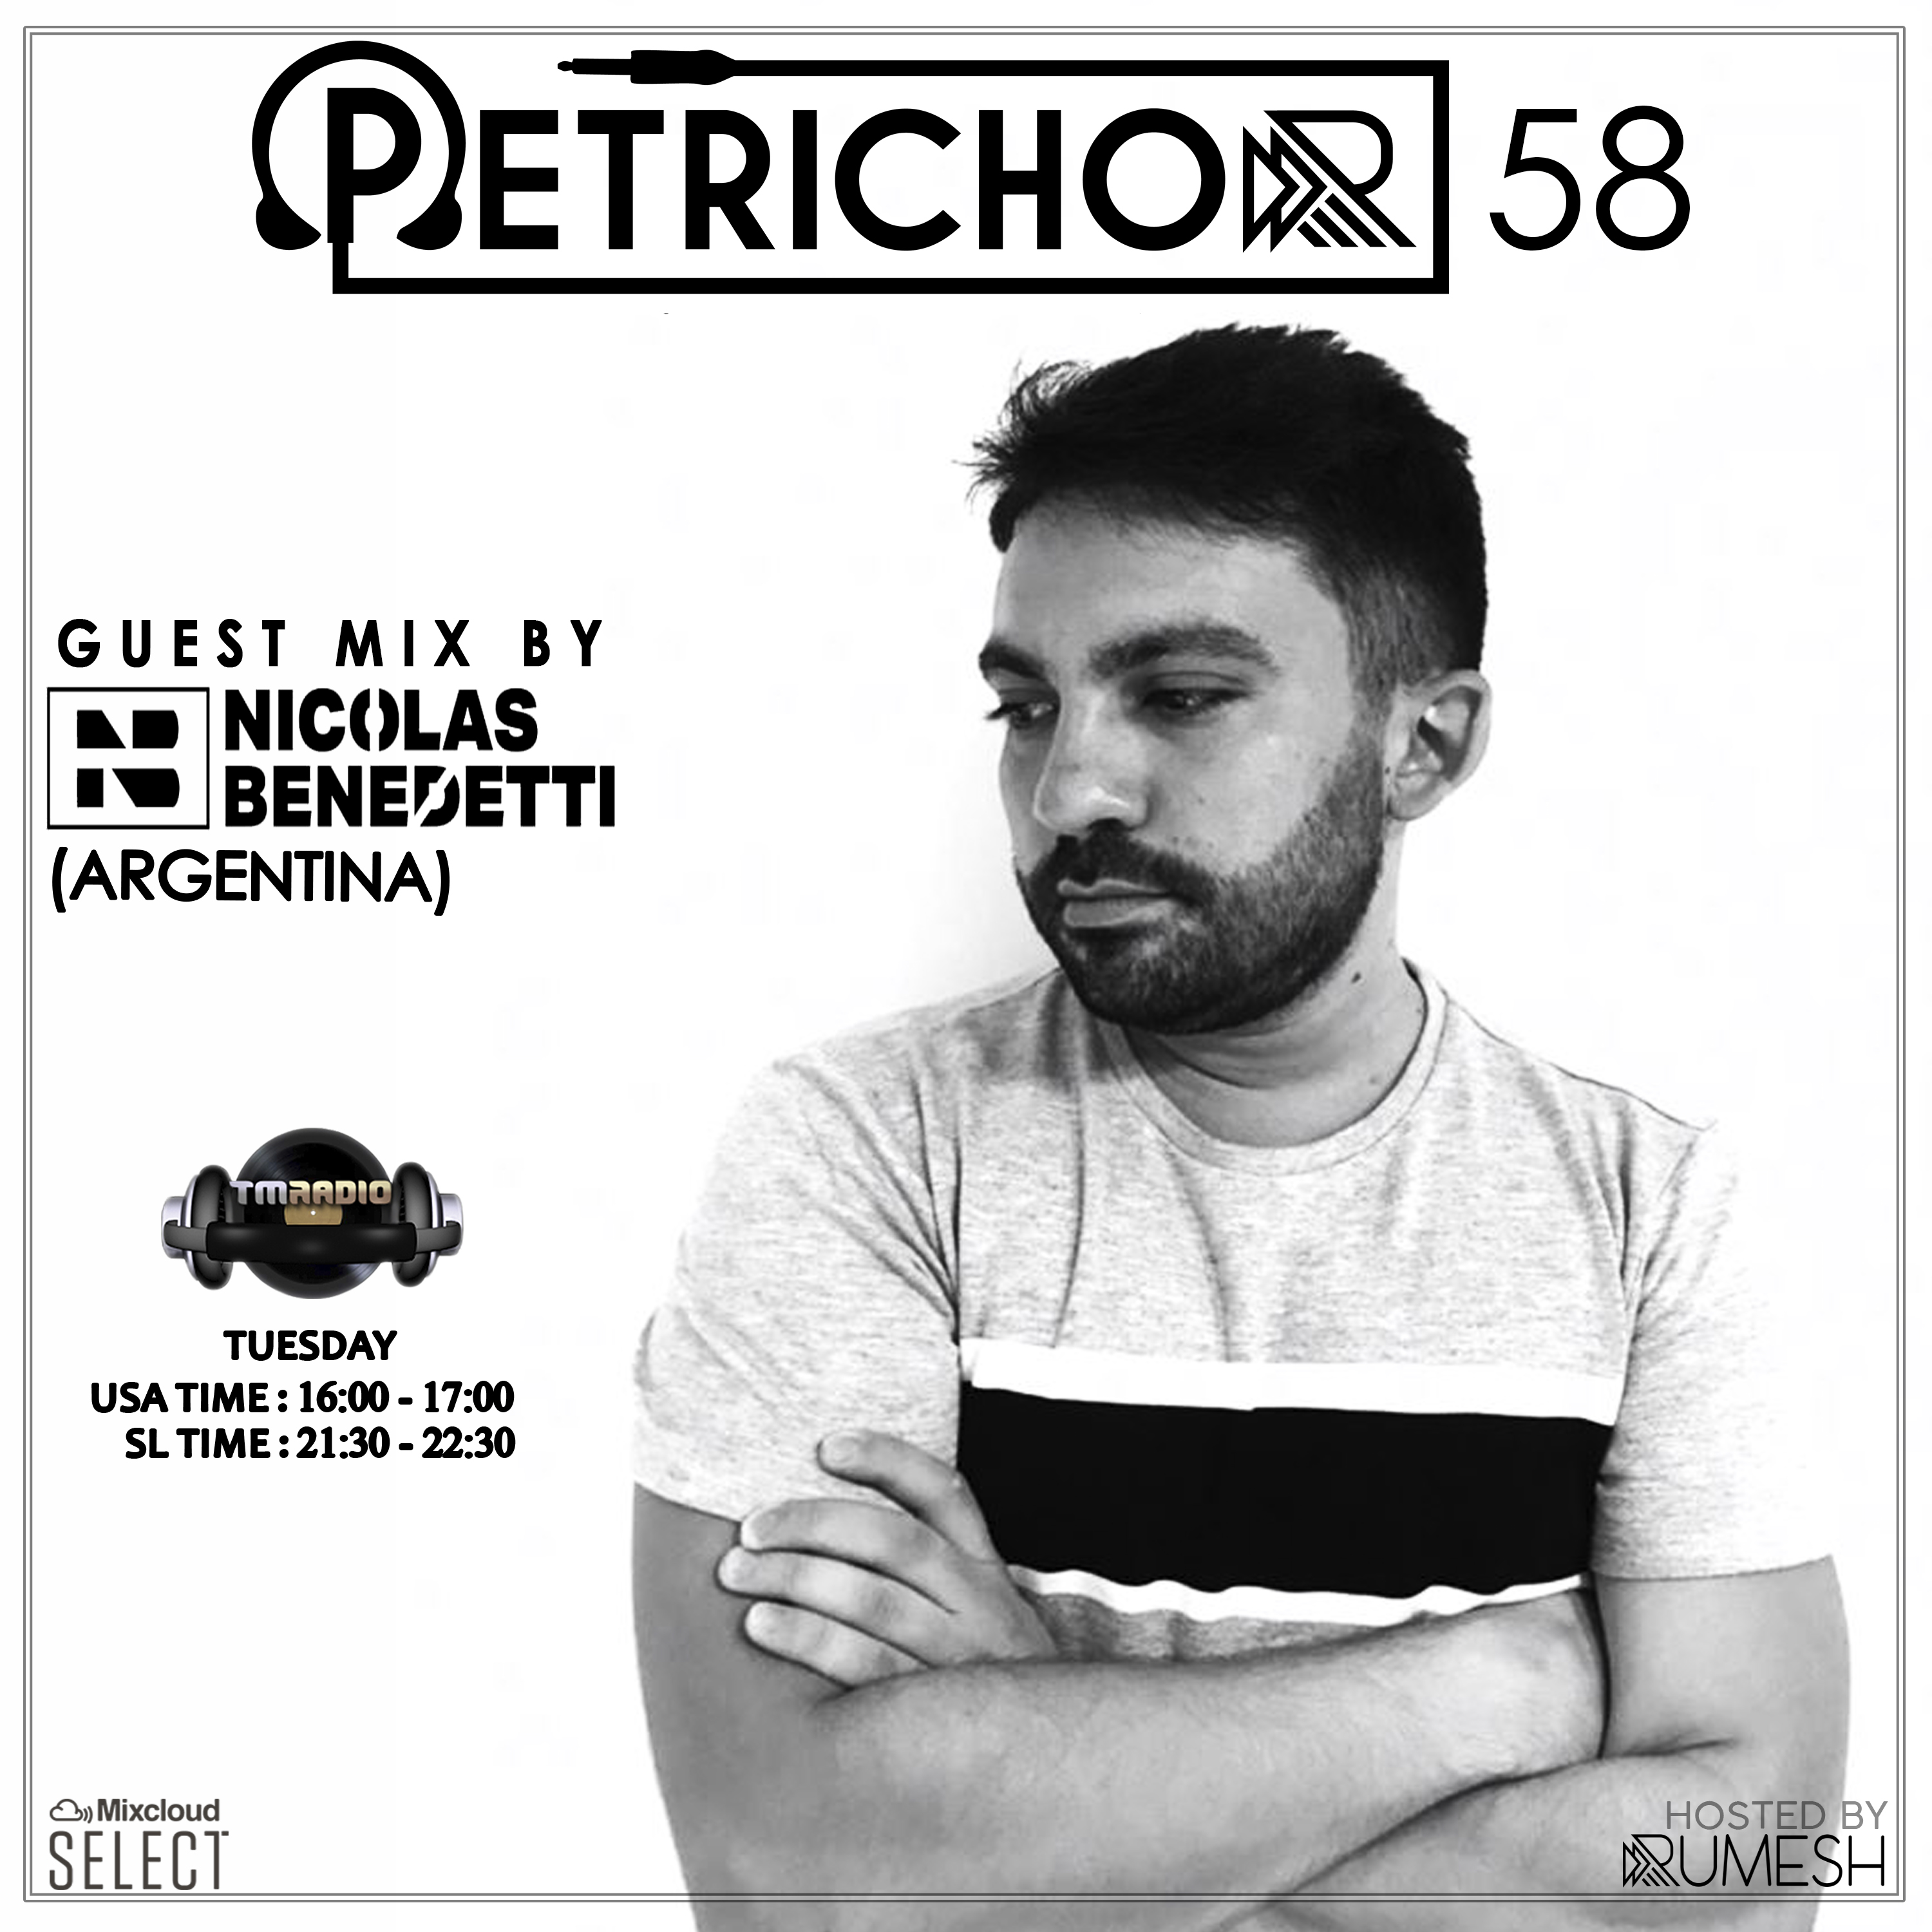 Petrichor 58 guest mix by Nicolas Benedetti (Argentina) (from December 17th, 2019)